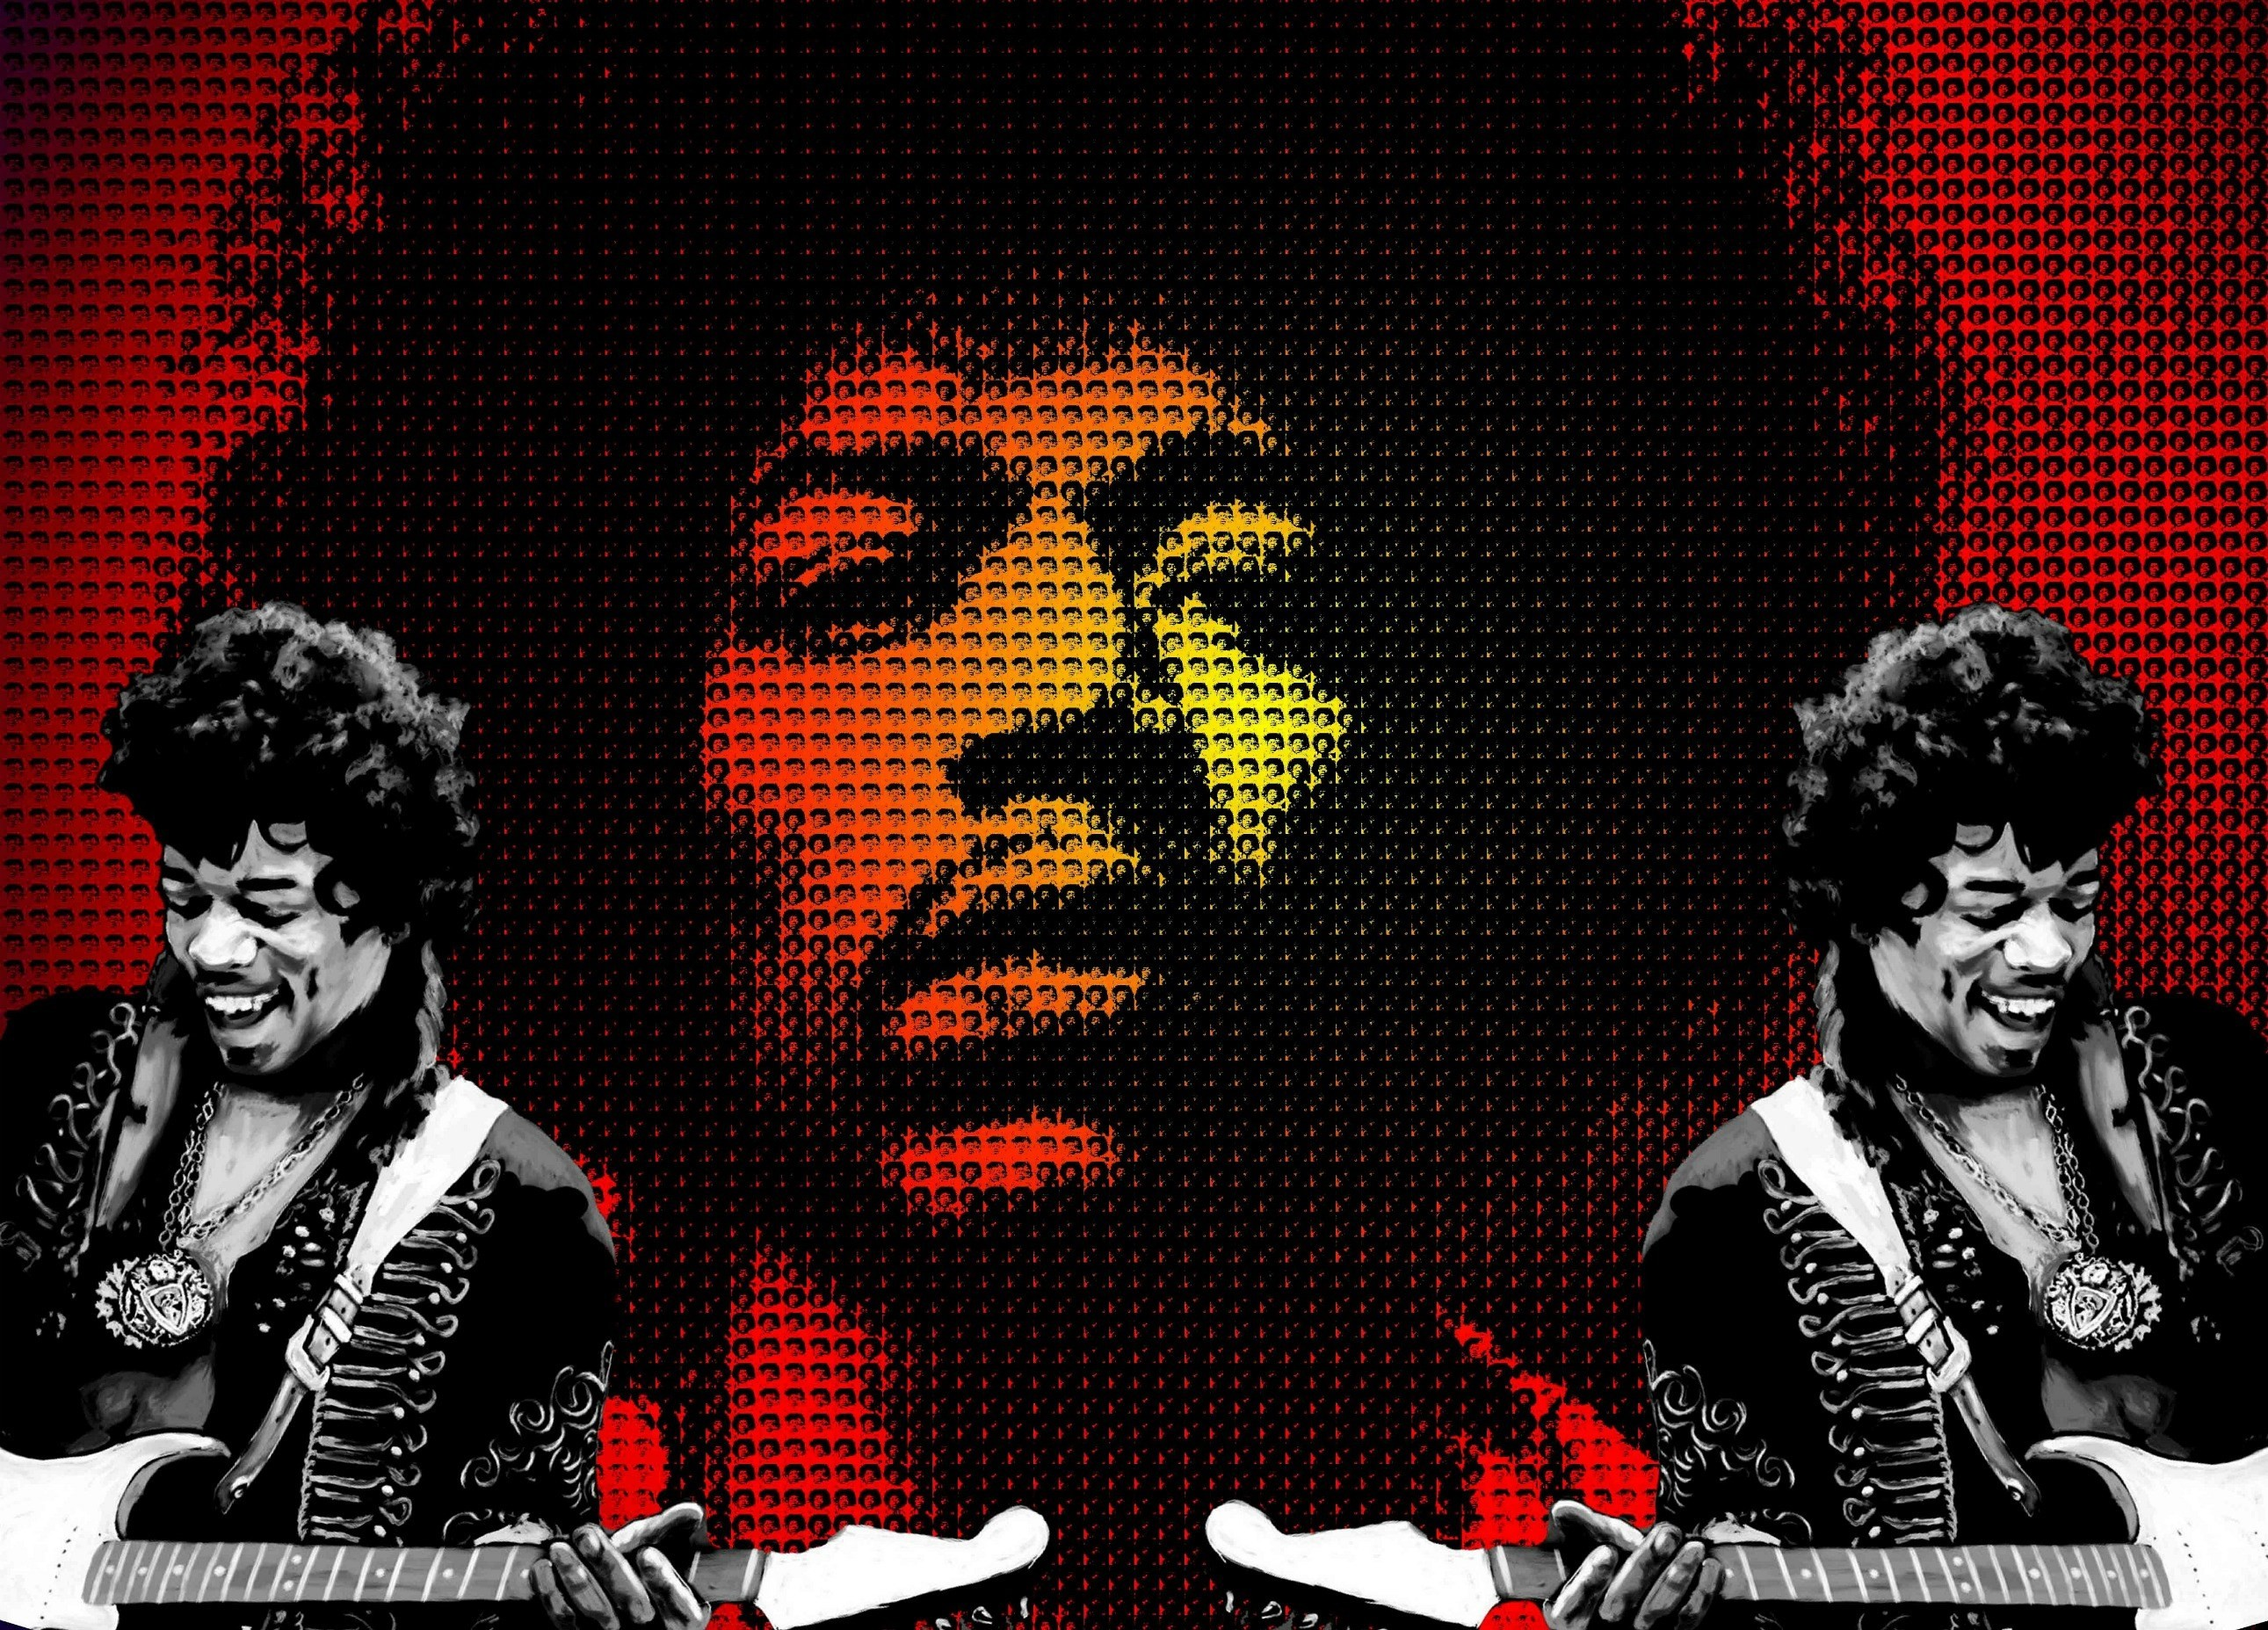 2581x1855 Rayburn Bush - jimi hendrix image: Wallpapers Collection -  px